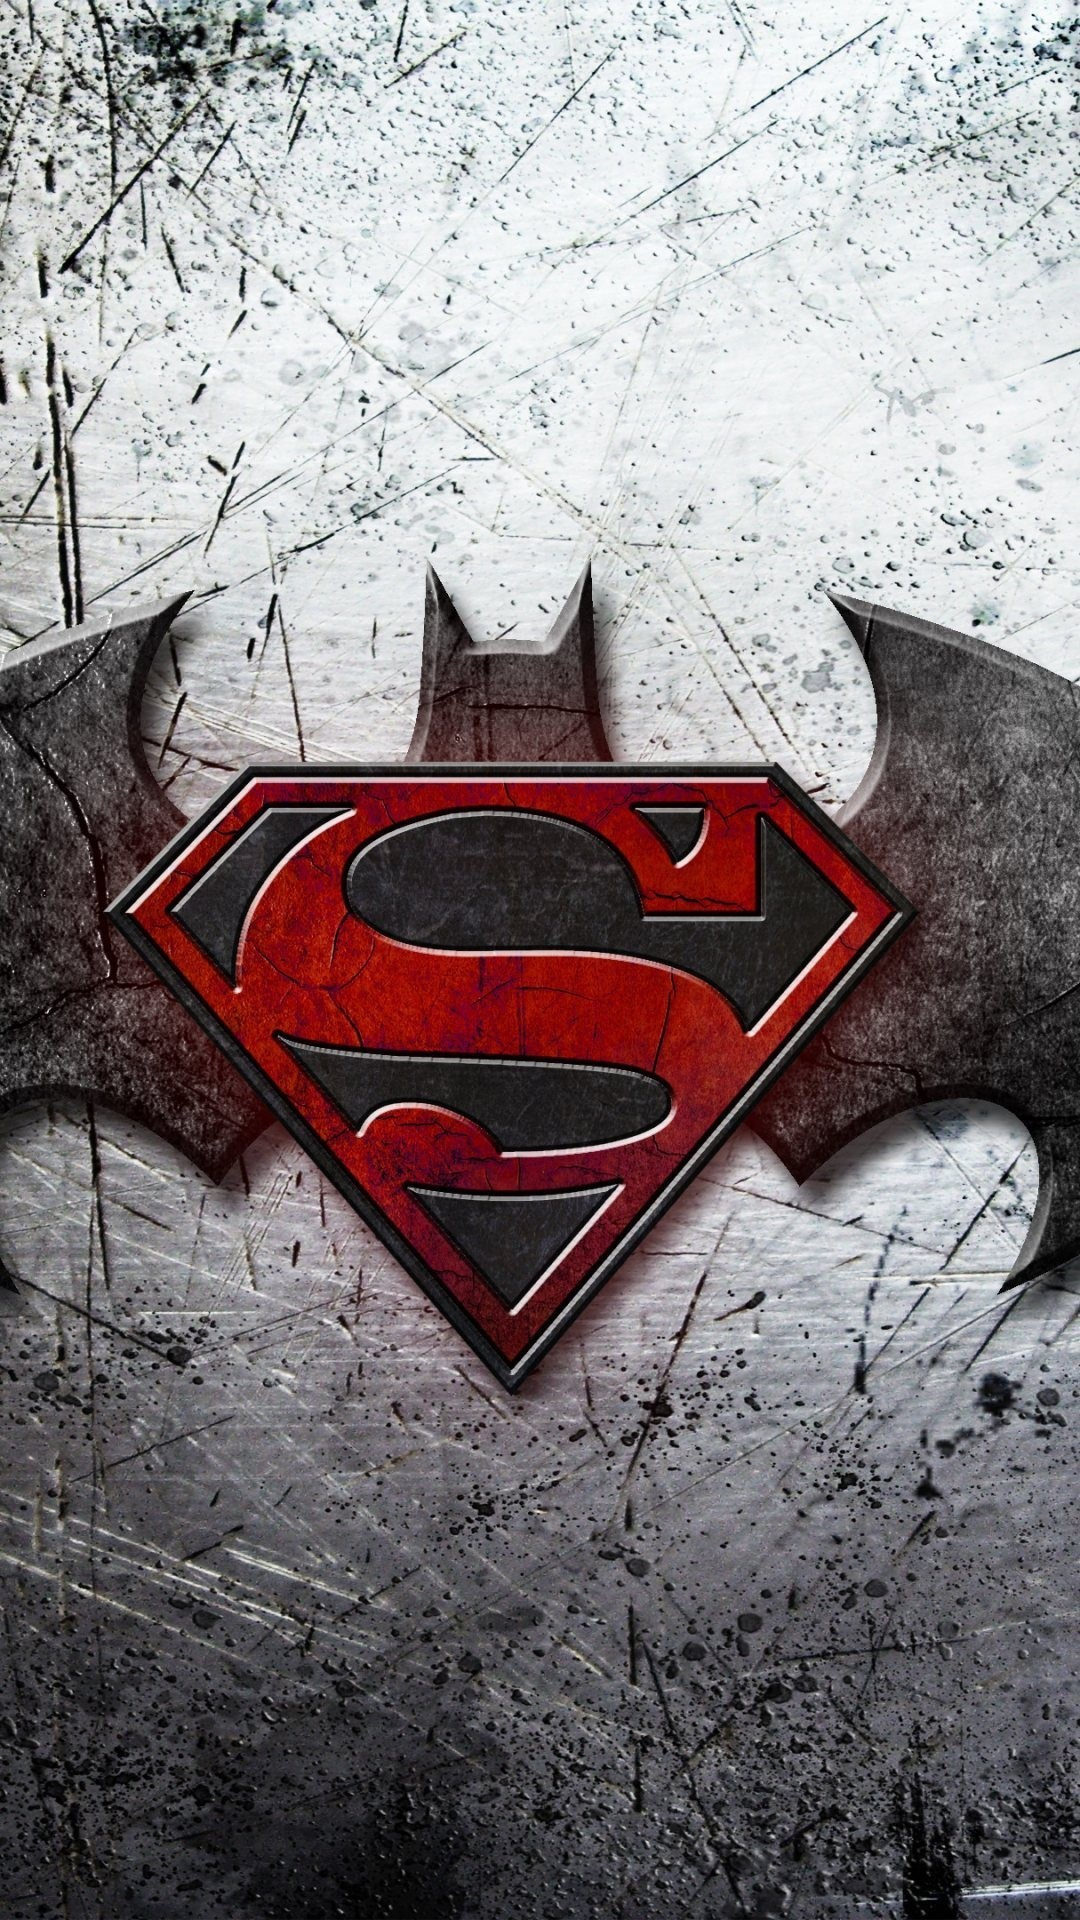 batman vs superman hd wallpapers for iphone 7 wallpapers wonder woman free vector wonder woman emblem vector